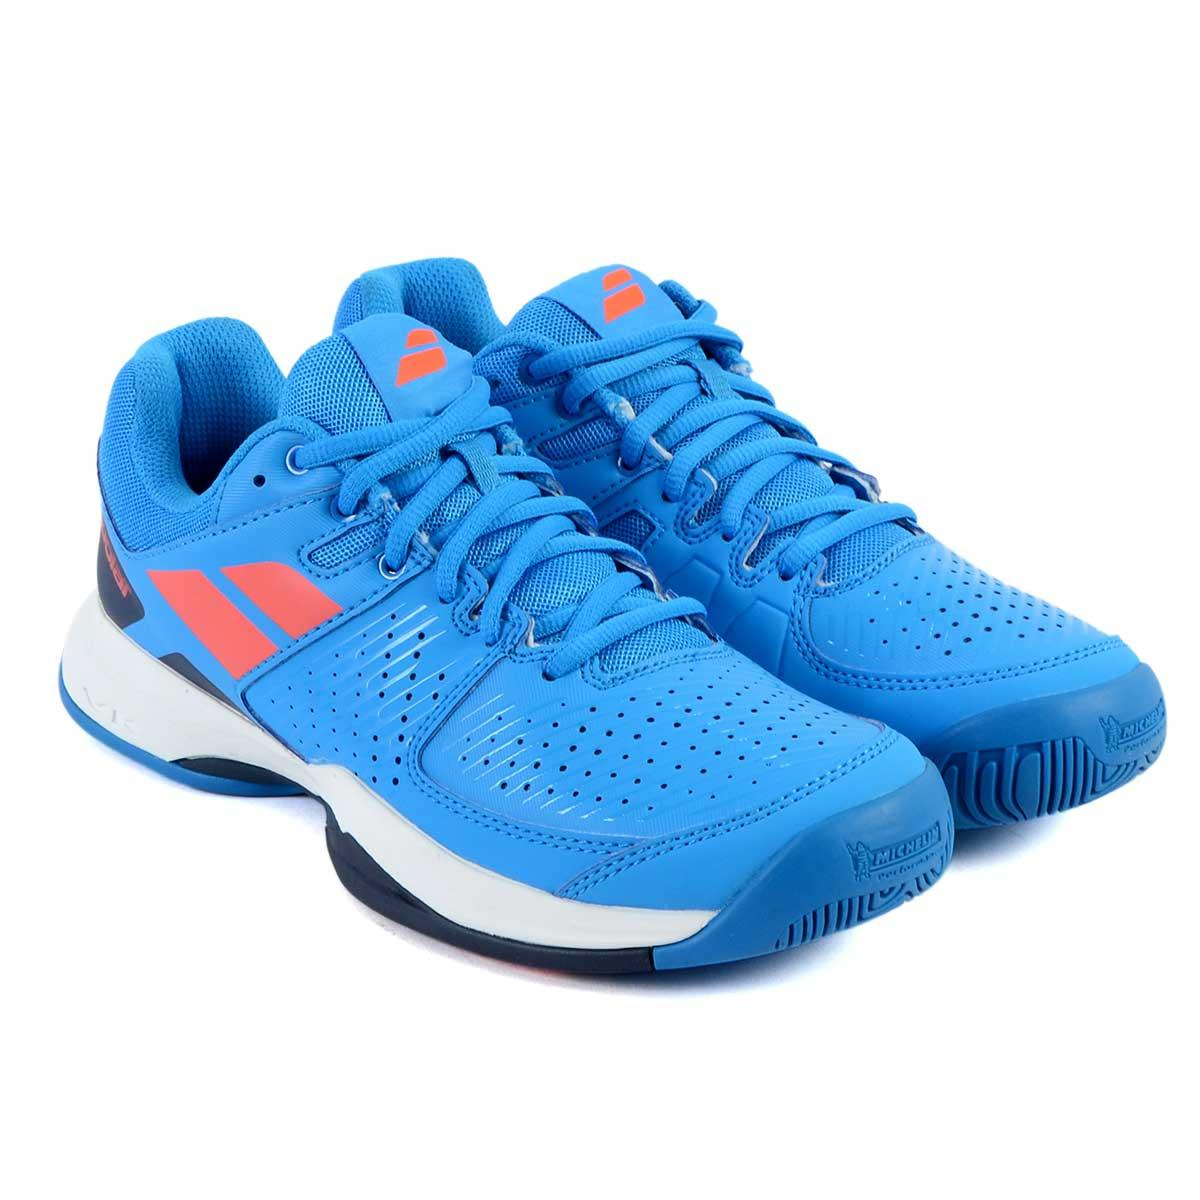 Buy Babolat Pulsion All Court Tennis Shoes Drive Blue Online